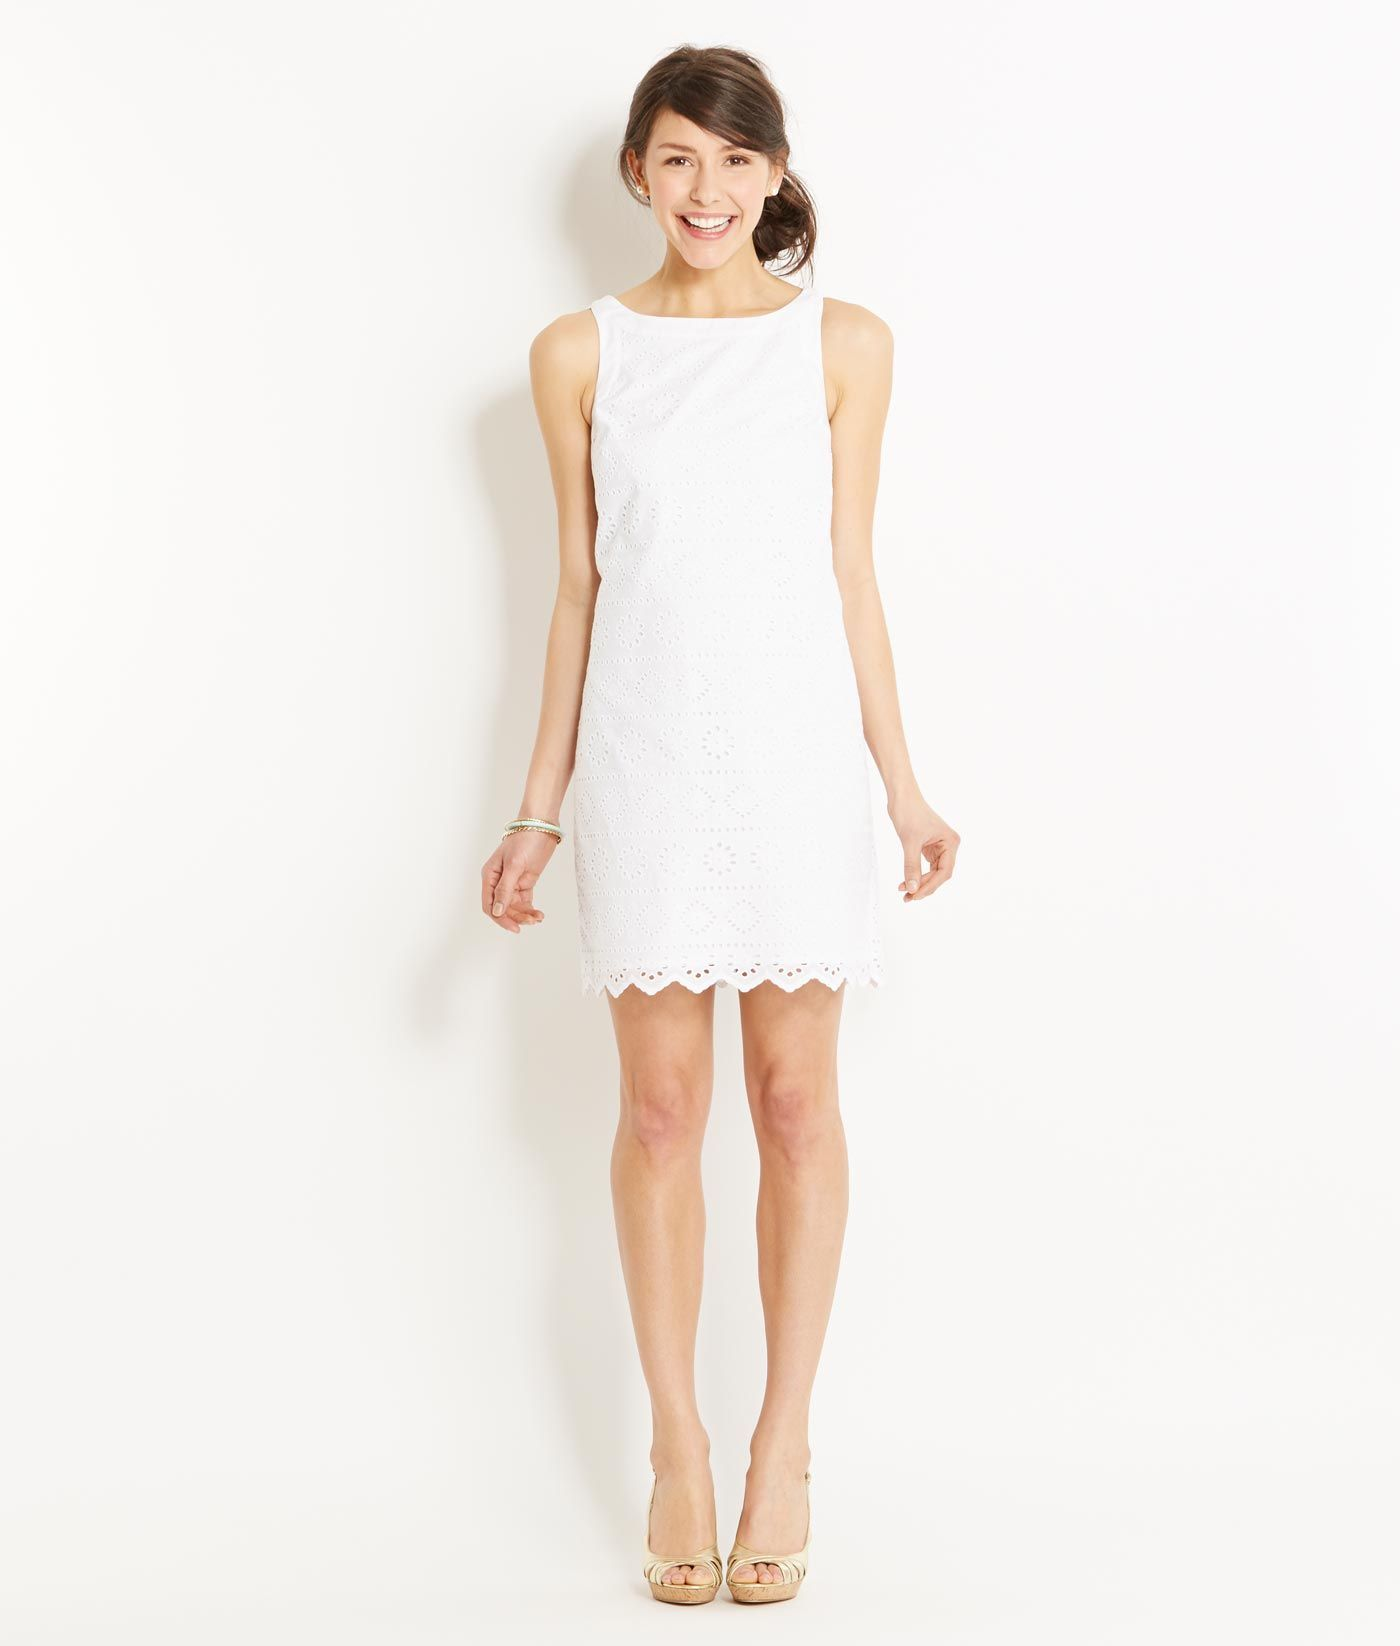 244875528d5 vineyard vines eyelet dress - can I just wear white every day til we get  married